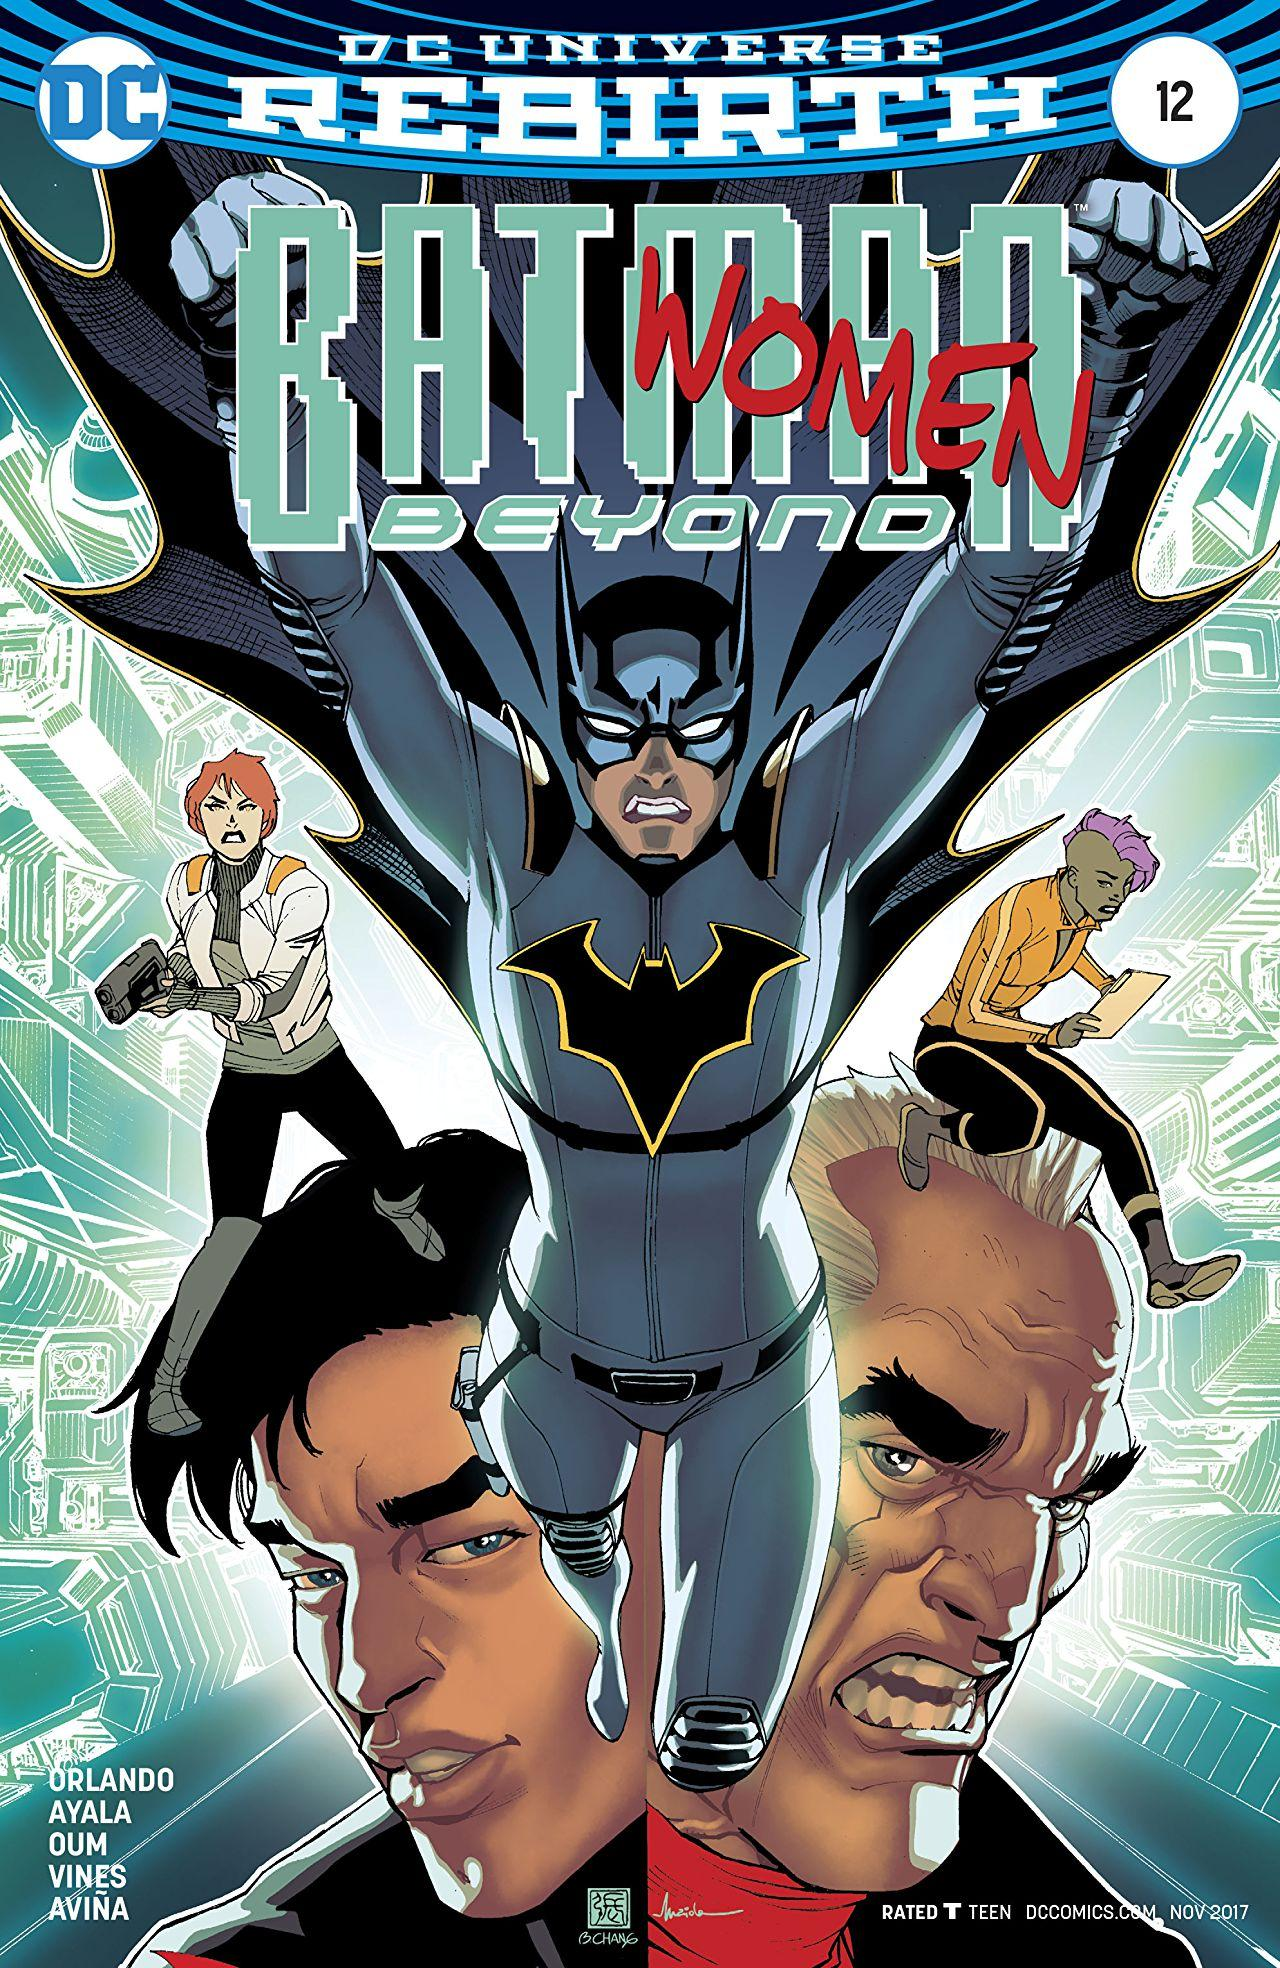 Batman Beyond Vol. 6 #12